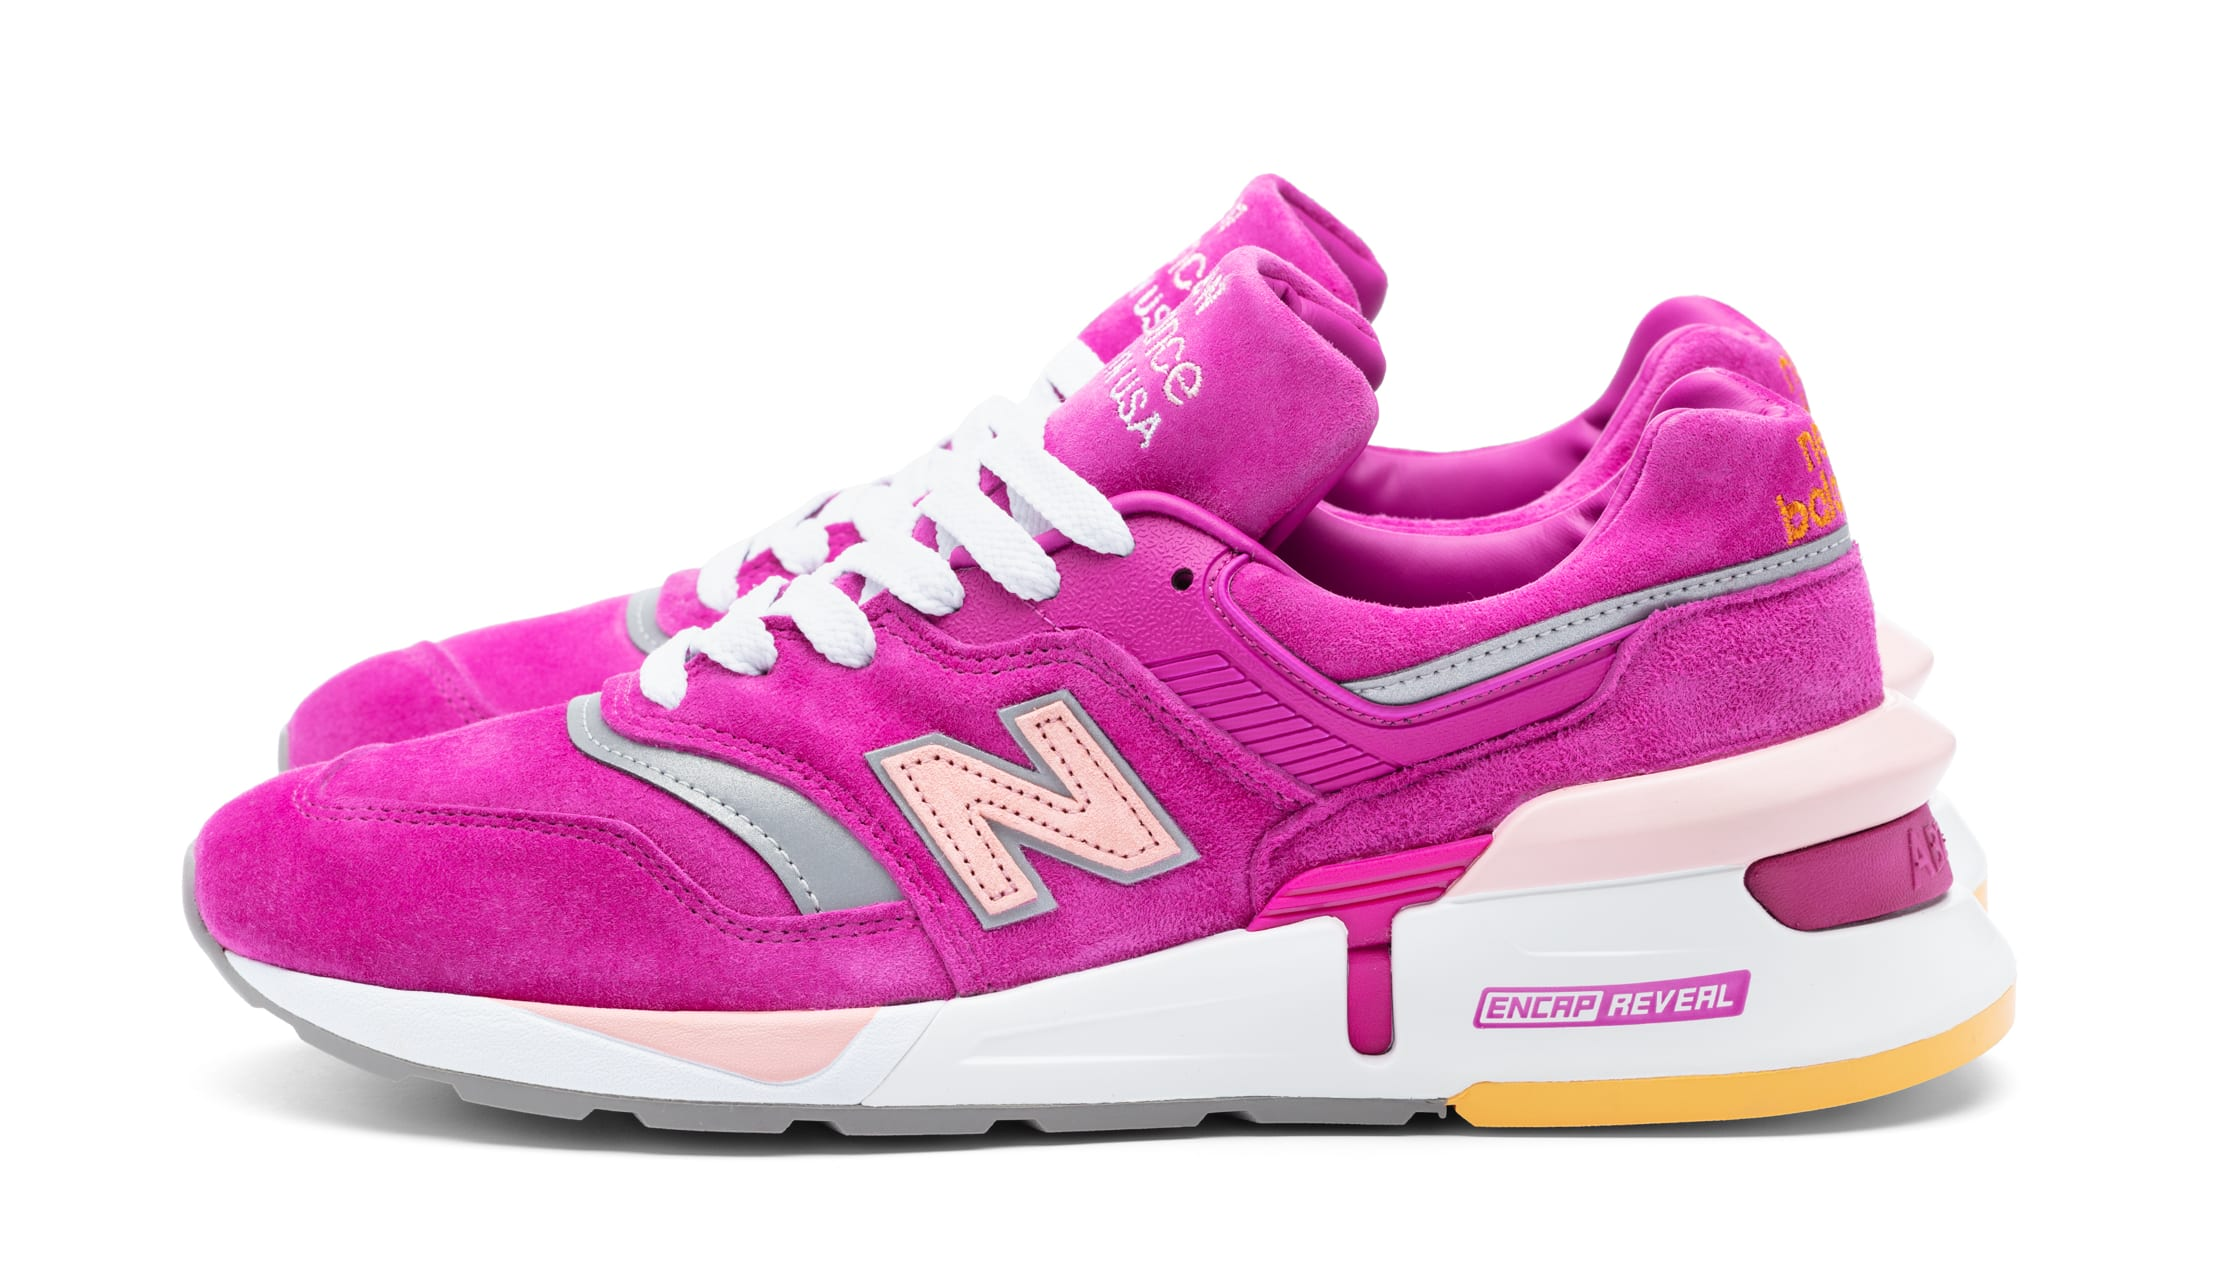 Concepts x New Balance 997S Fusion 'ESRUC' (Left)